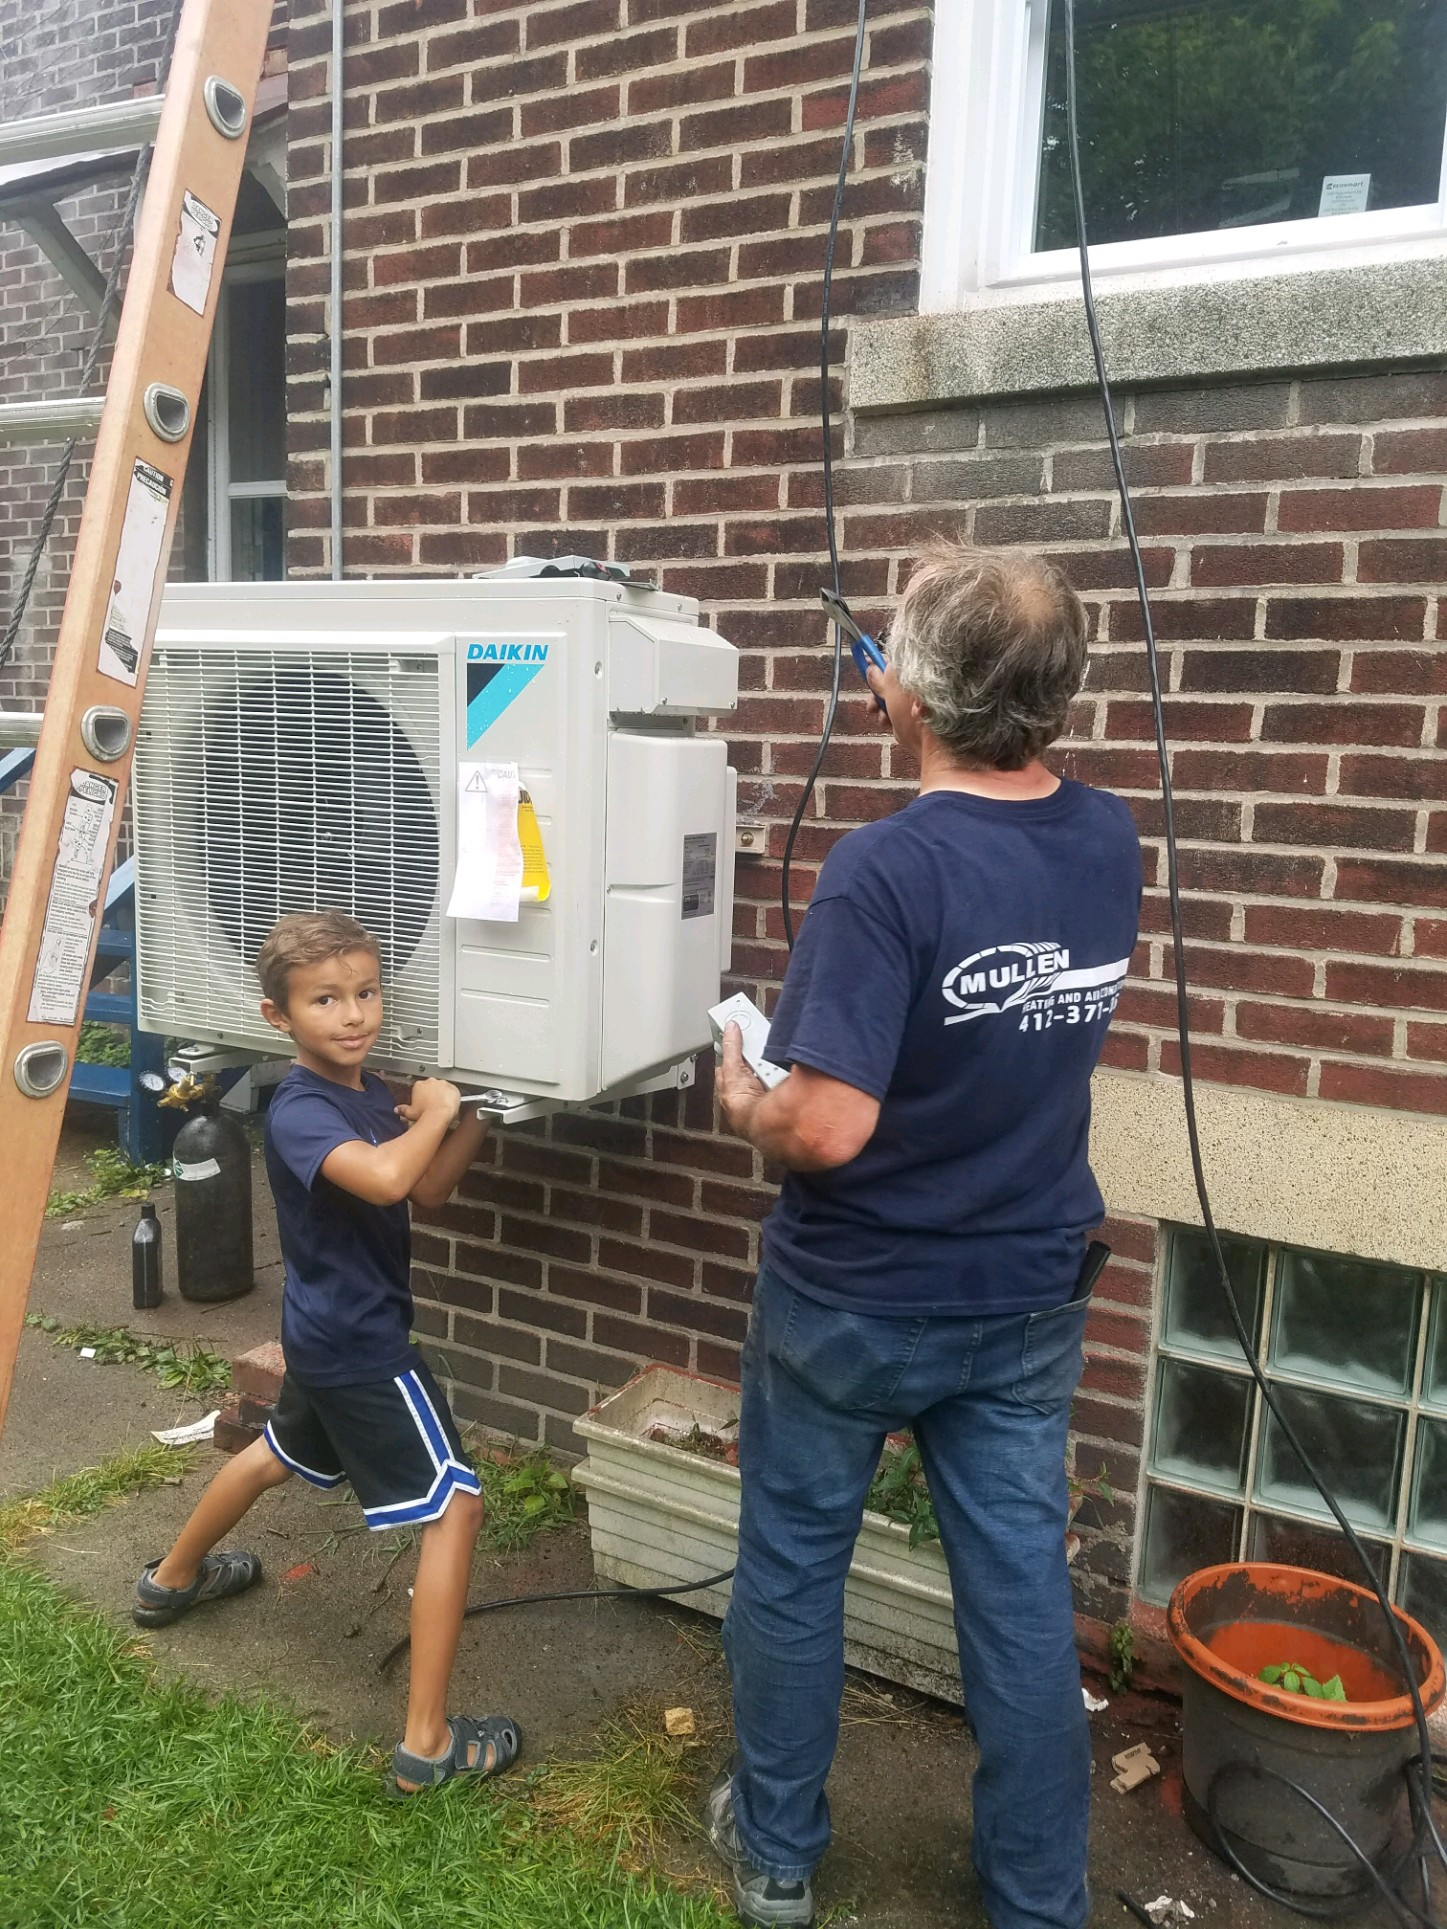 Mullen Heating And Air Conditioning 2019 Business Reviews